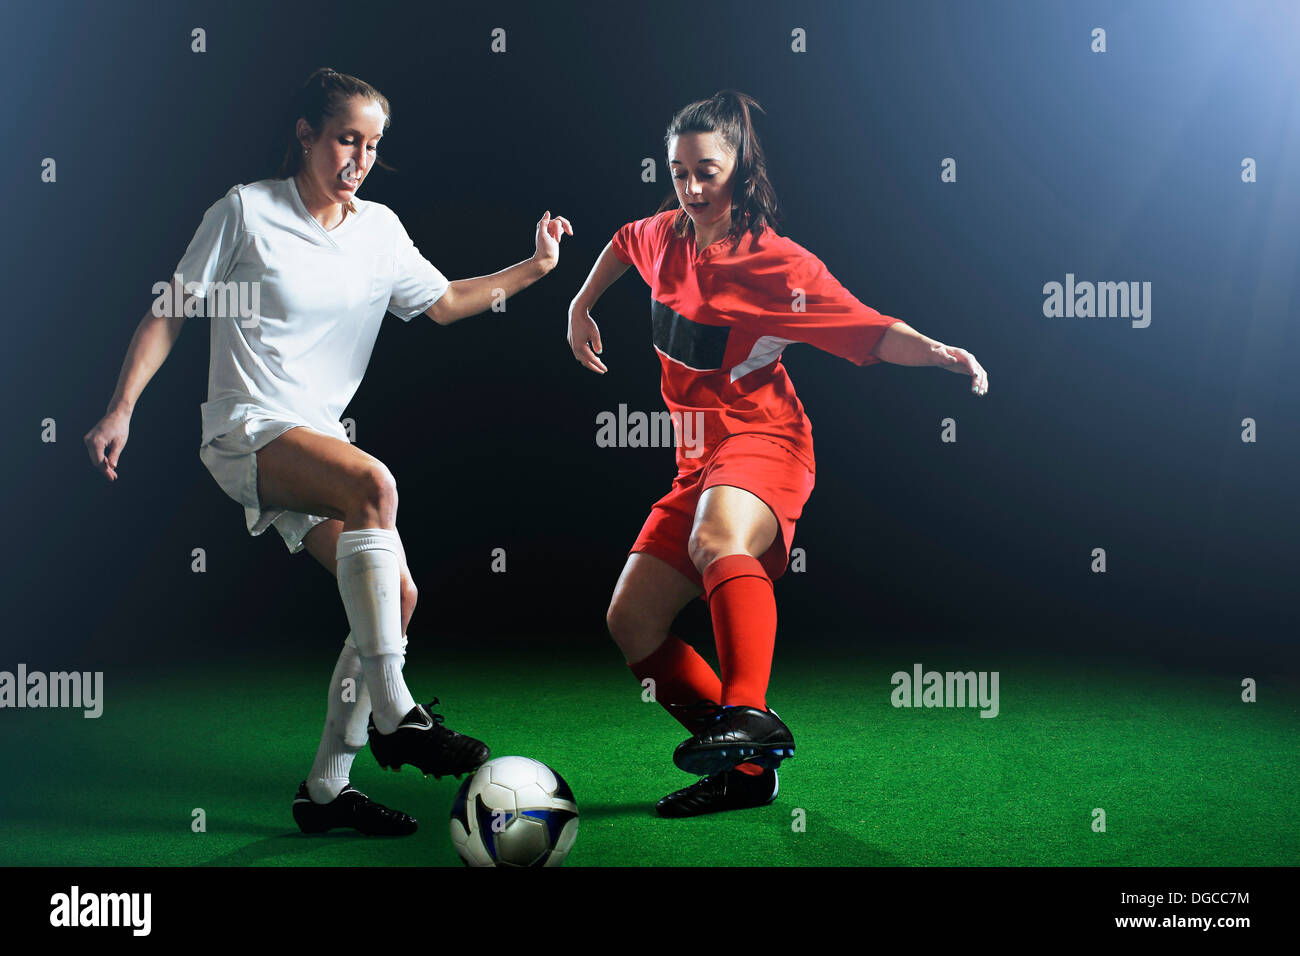 Two female soccer players tackling ball - Stock Image